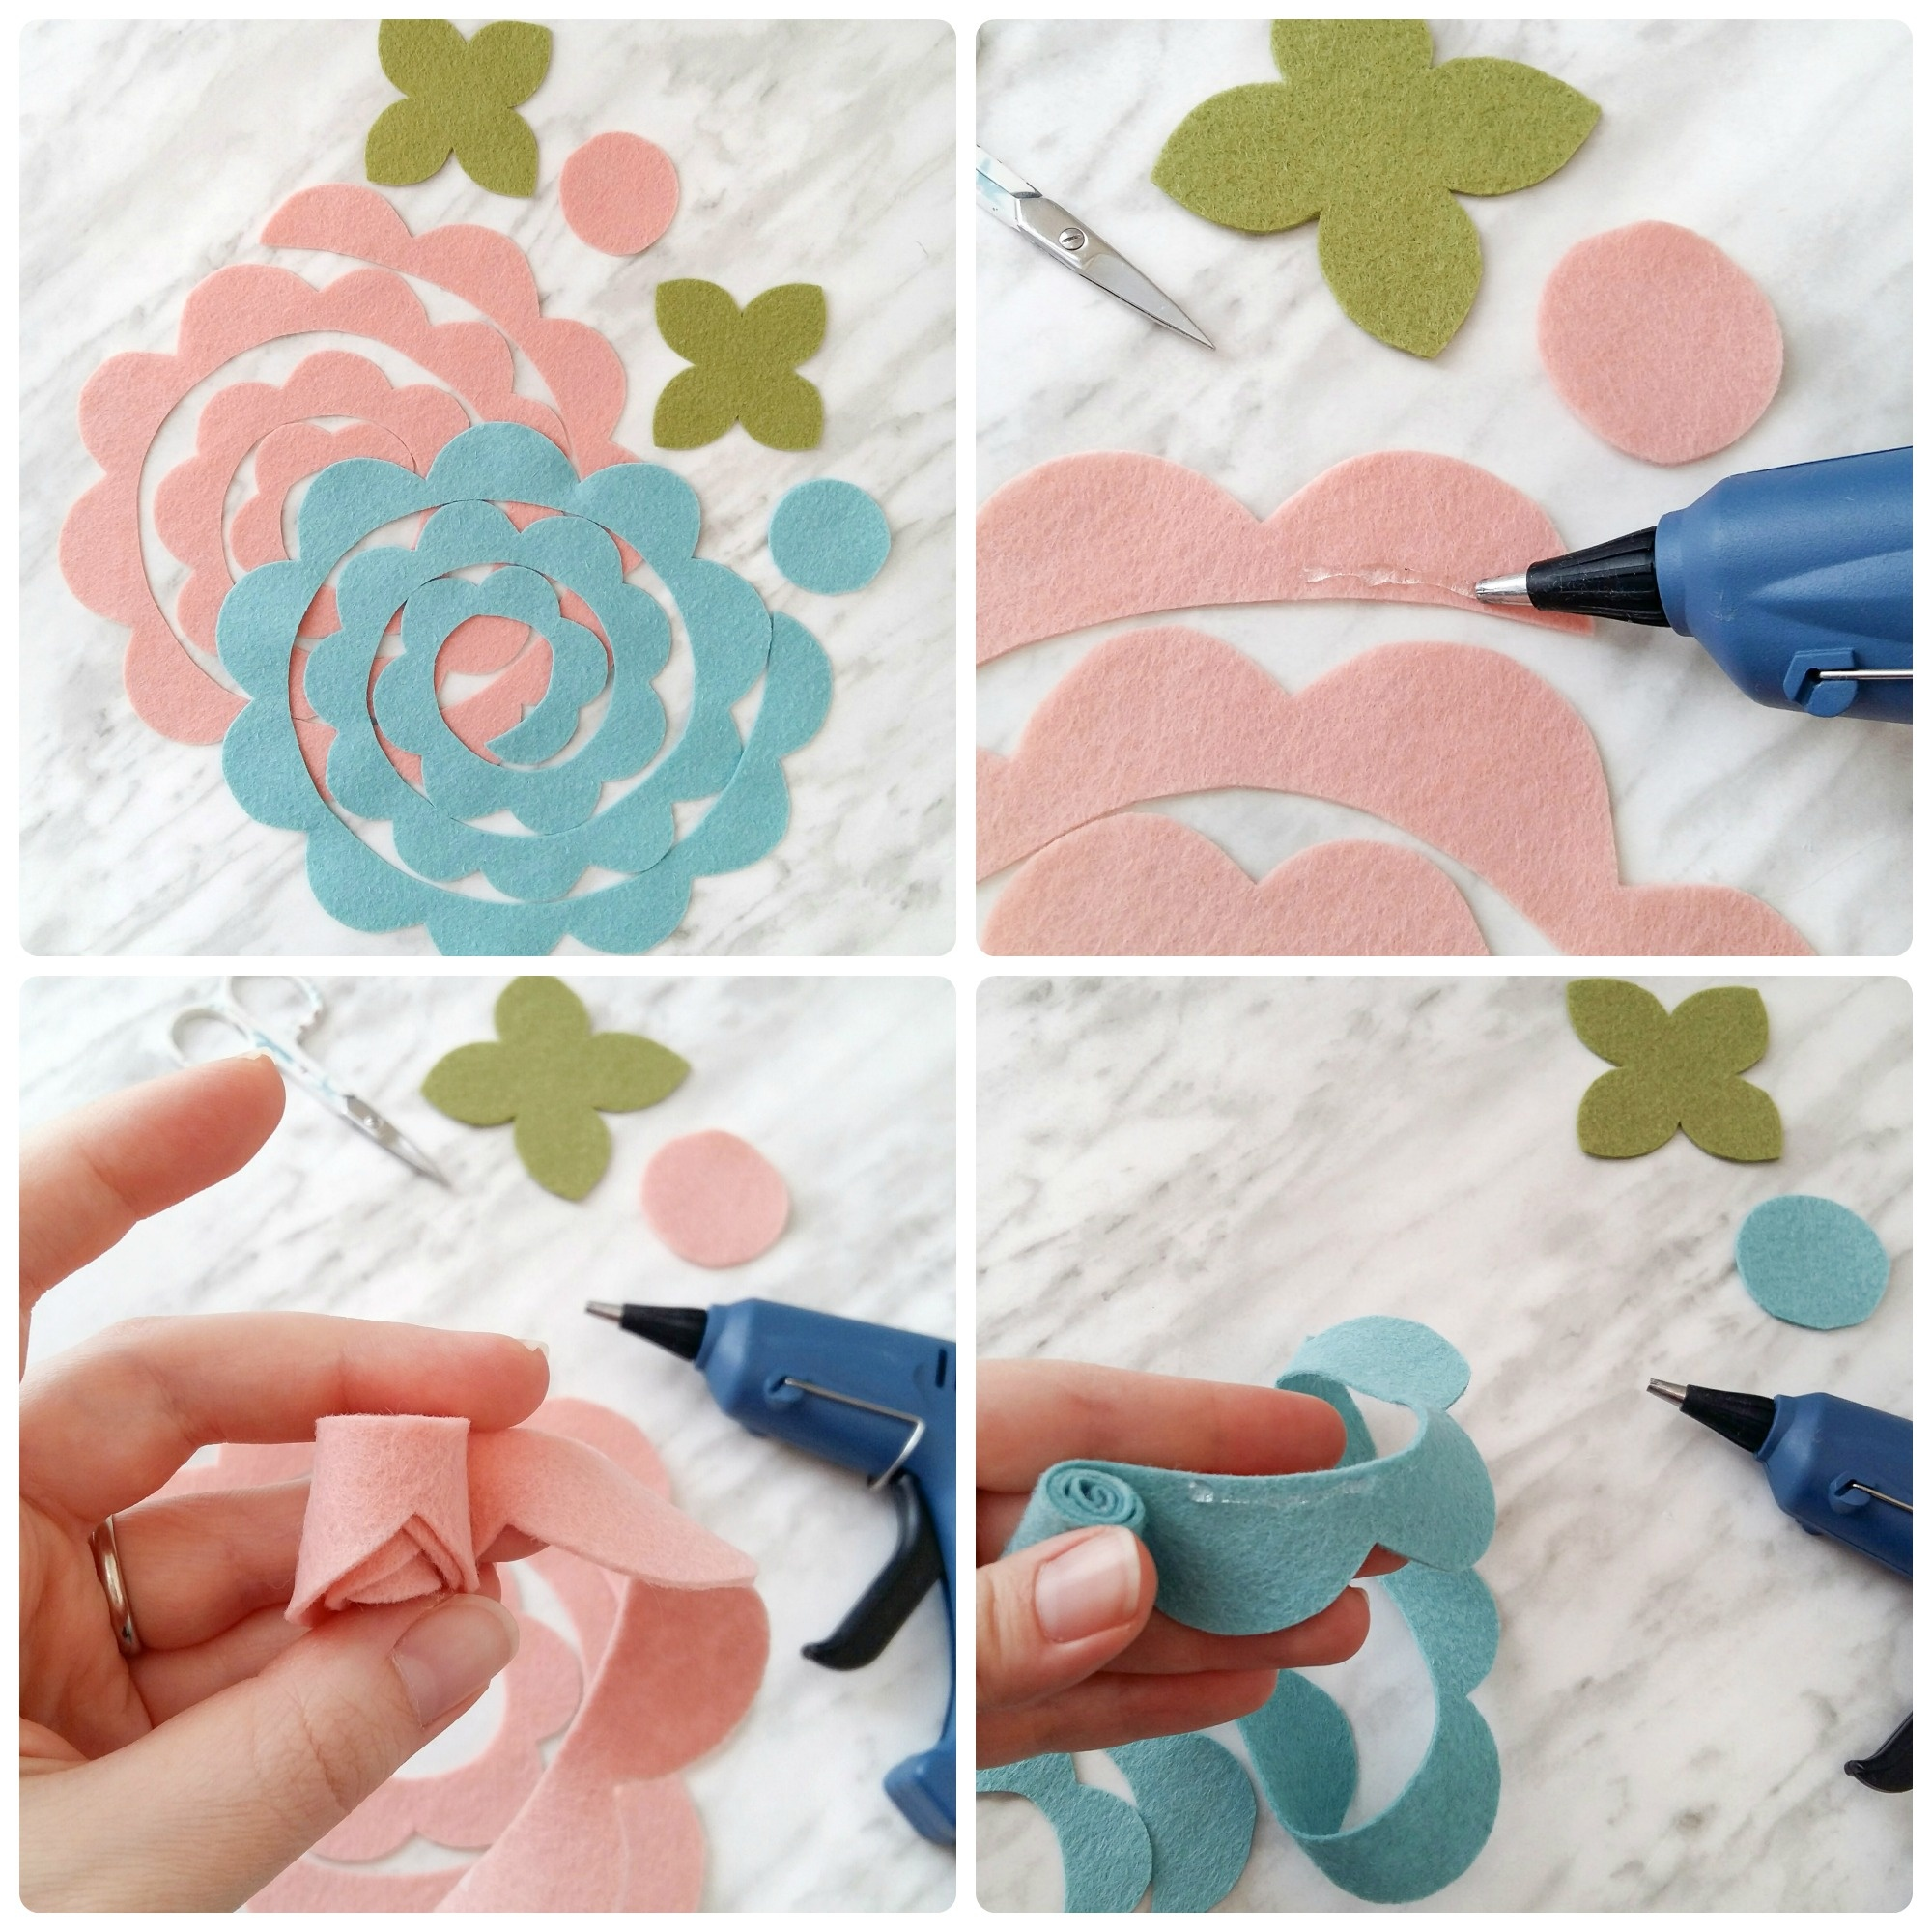 How To Make Felt Flowers - With Free Printable Pattern! | Wildflower - Free Printable Felt Patterns